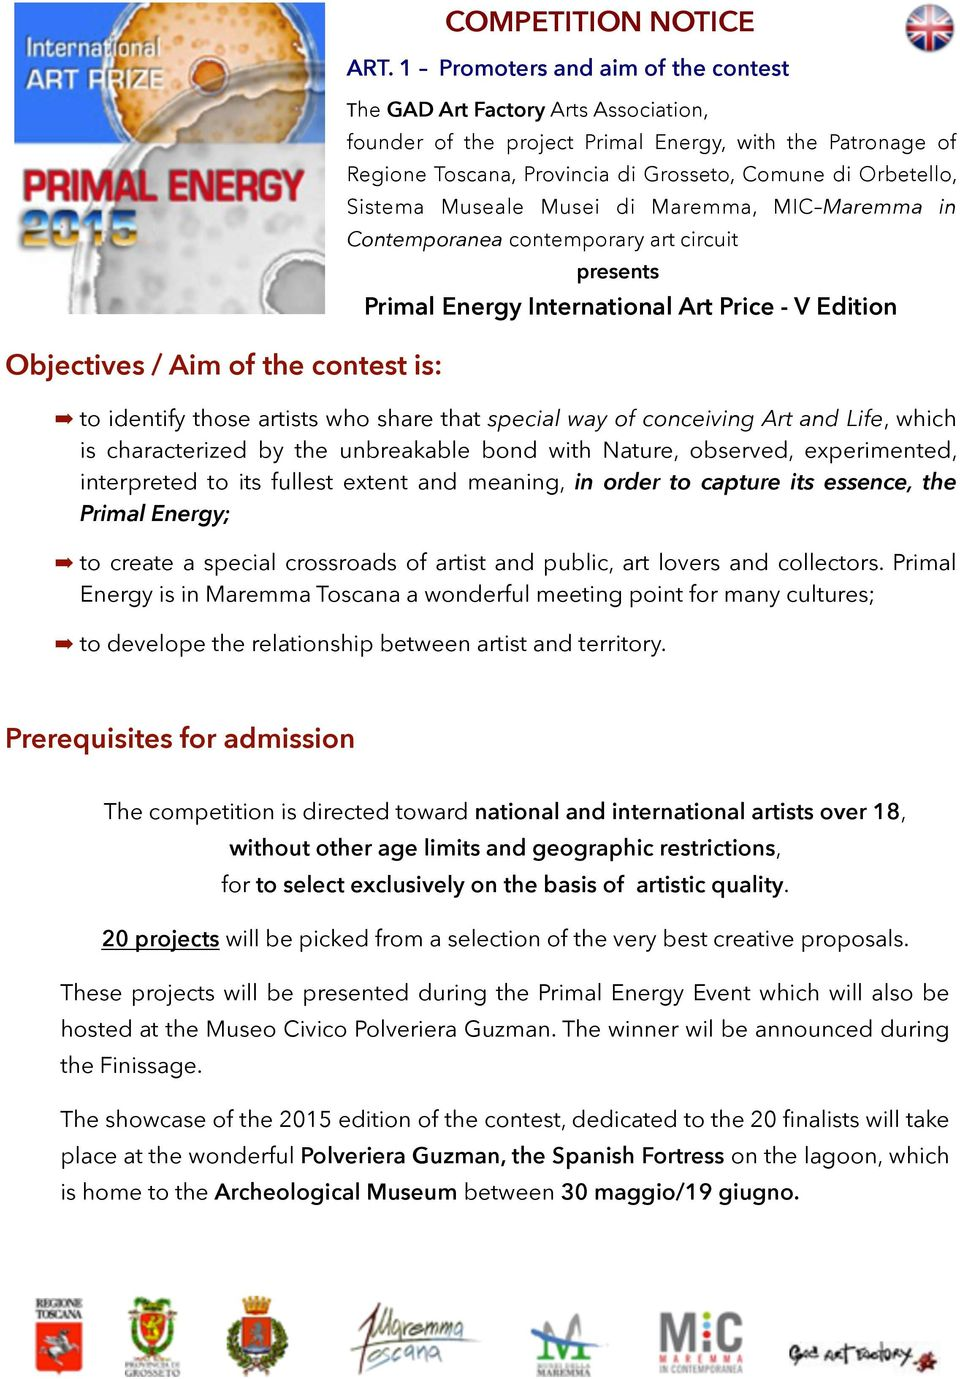 Sistema Museale Musei di Maremma, MIC Maremma in Contemporanea contemporary art circuit presents Primal Energy International Art Price - V Edition to identify those artists who share that special way